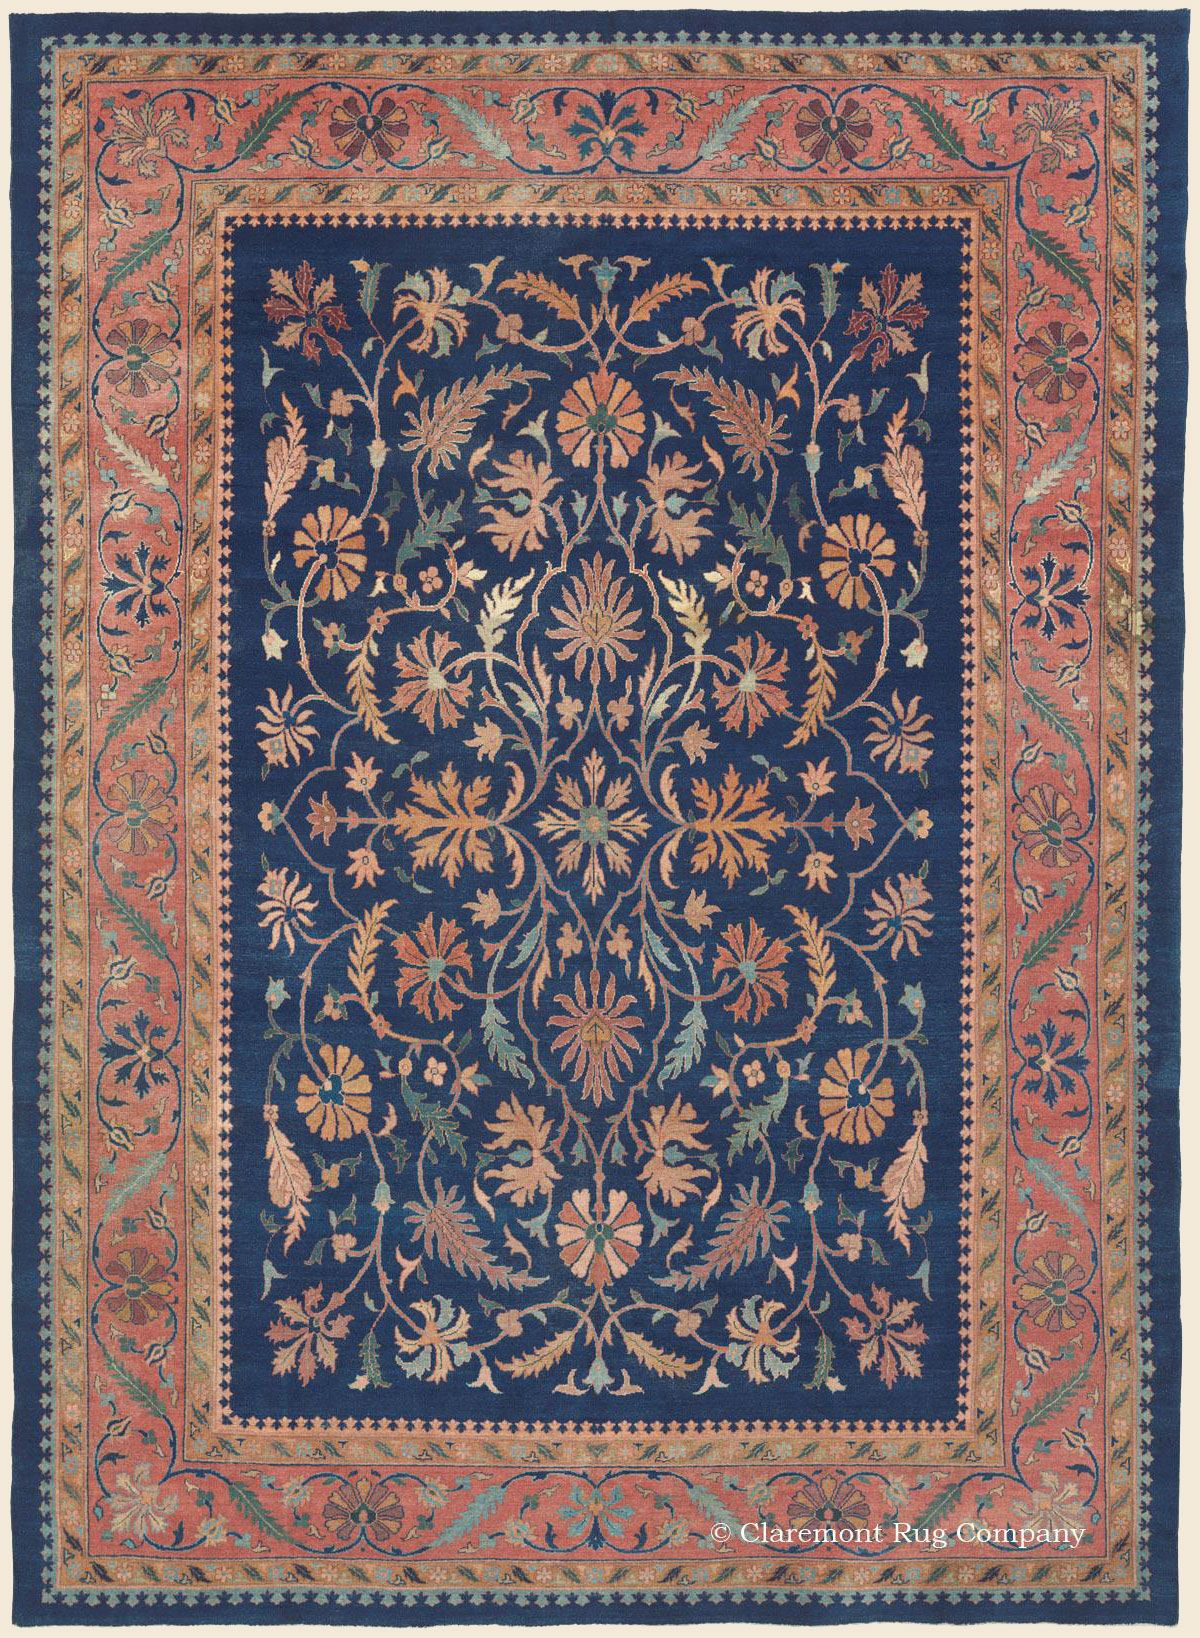 Agra 8 10 X 12 2 Circa 1900 Price 12 000 Northern India Antique Rug Claremont Rug Company Rugs Antique Rugs Claremont Rug Company